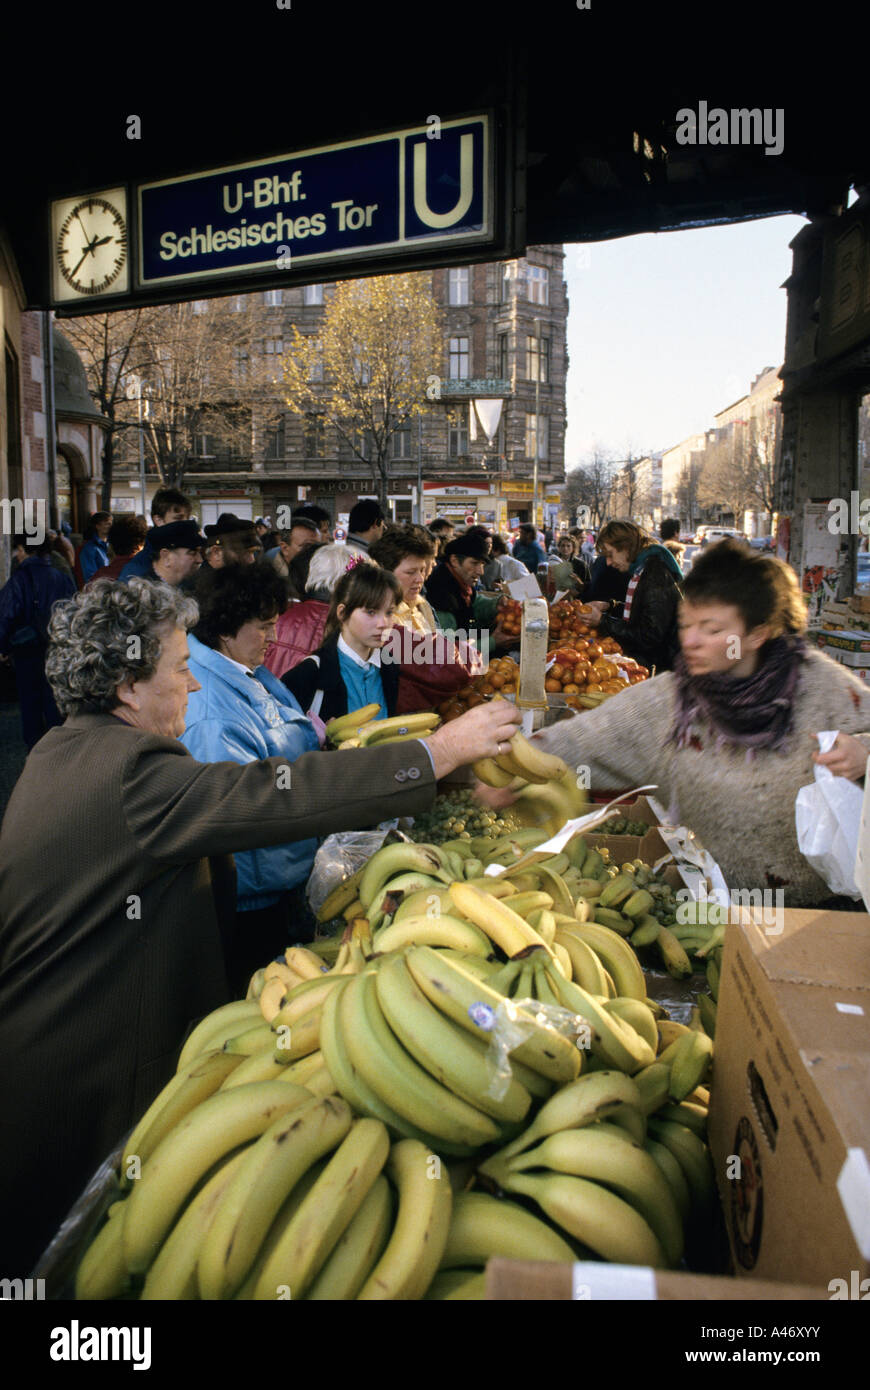 Fall of the Berlin Wall: at the Station Schlesisches Tor, citizens from East Berlin buy bananas, Berlin, Germany - Stock Image